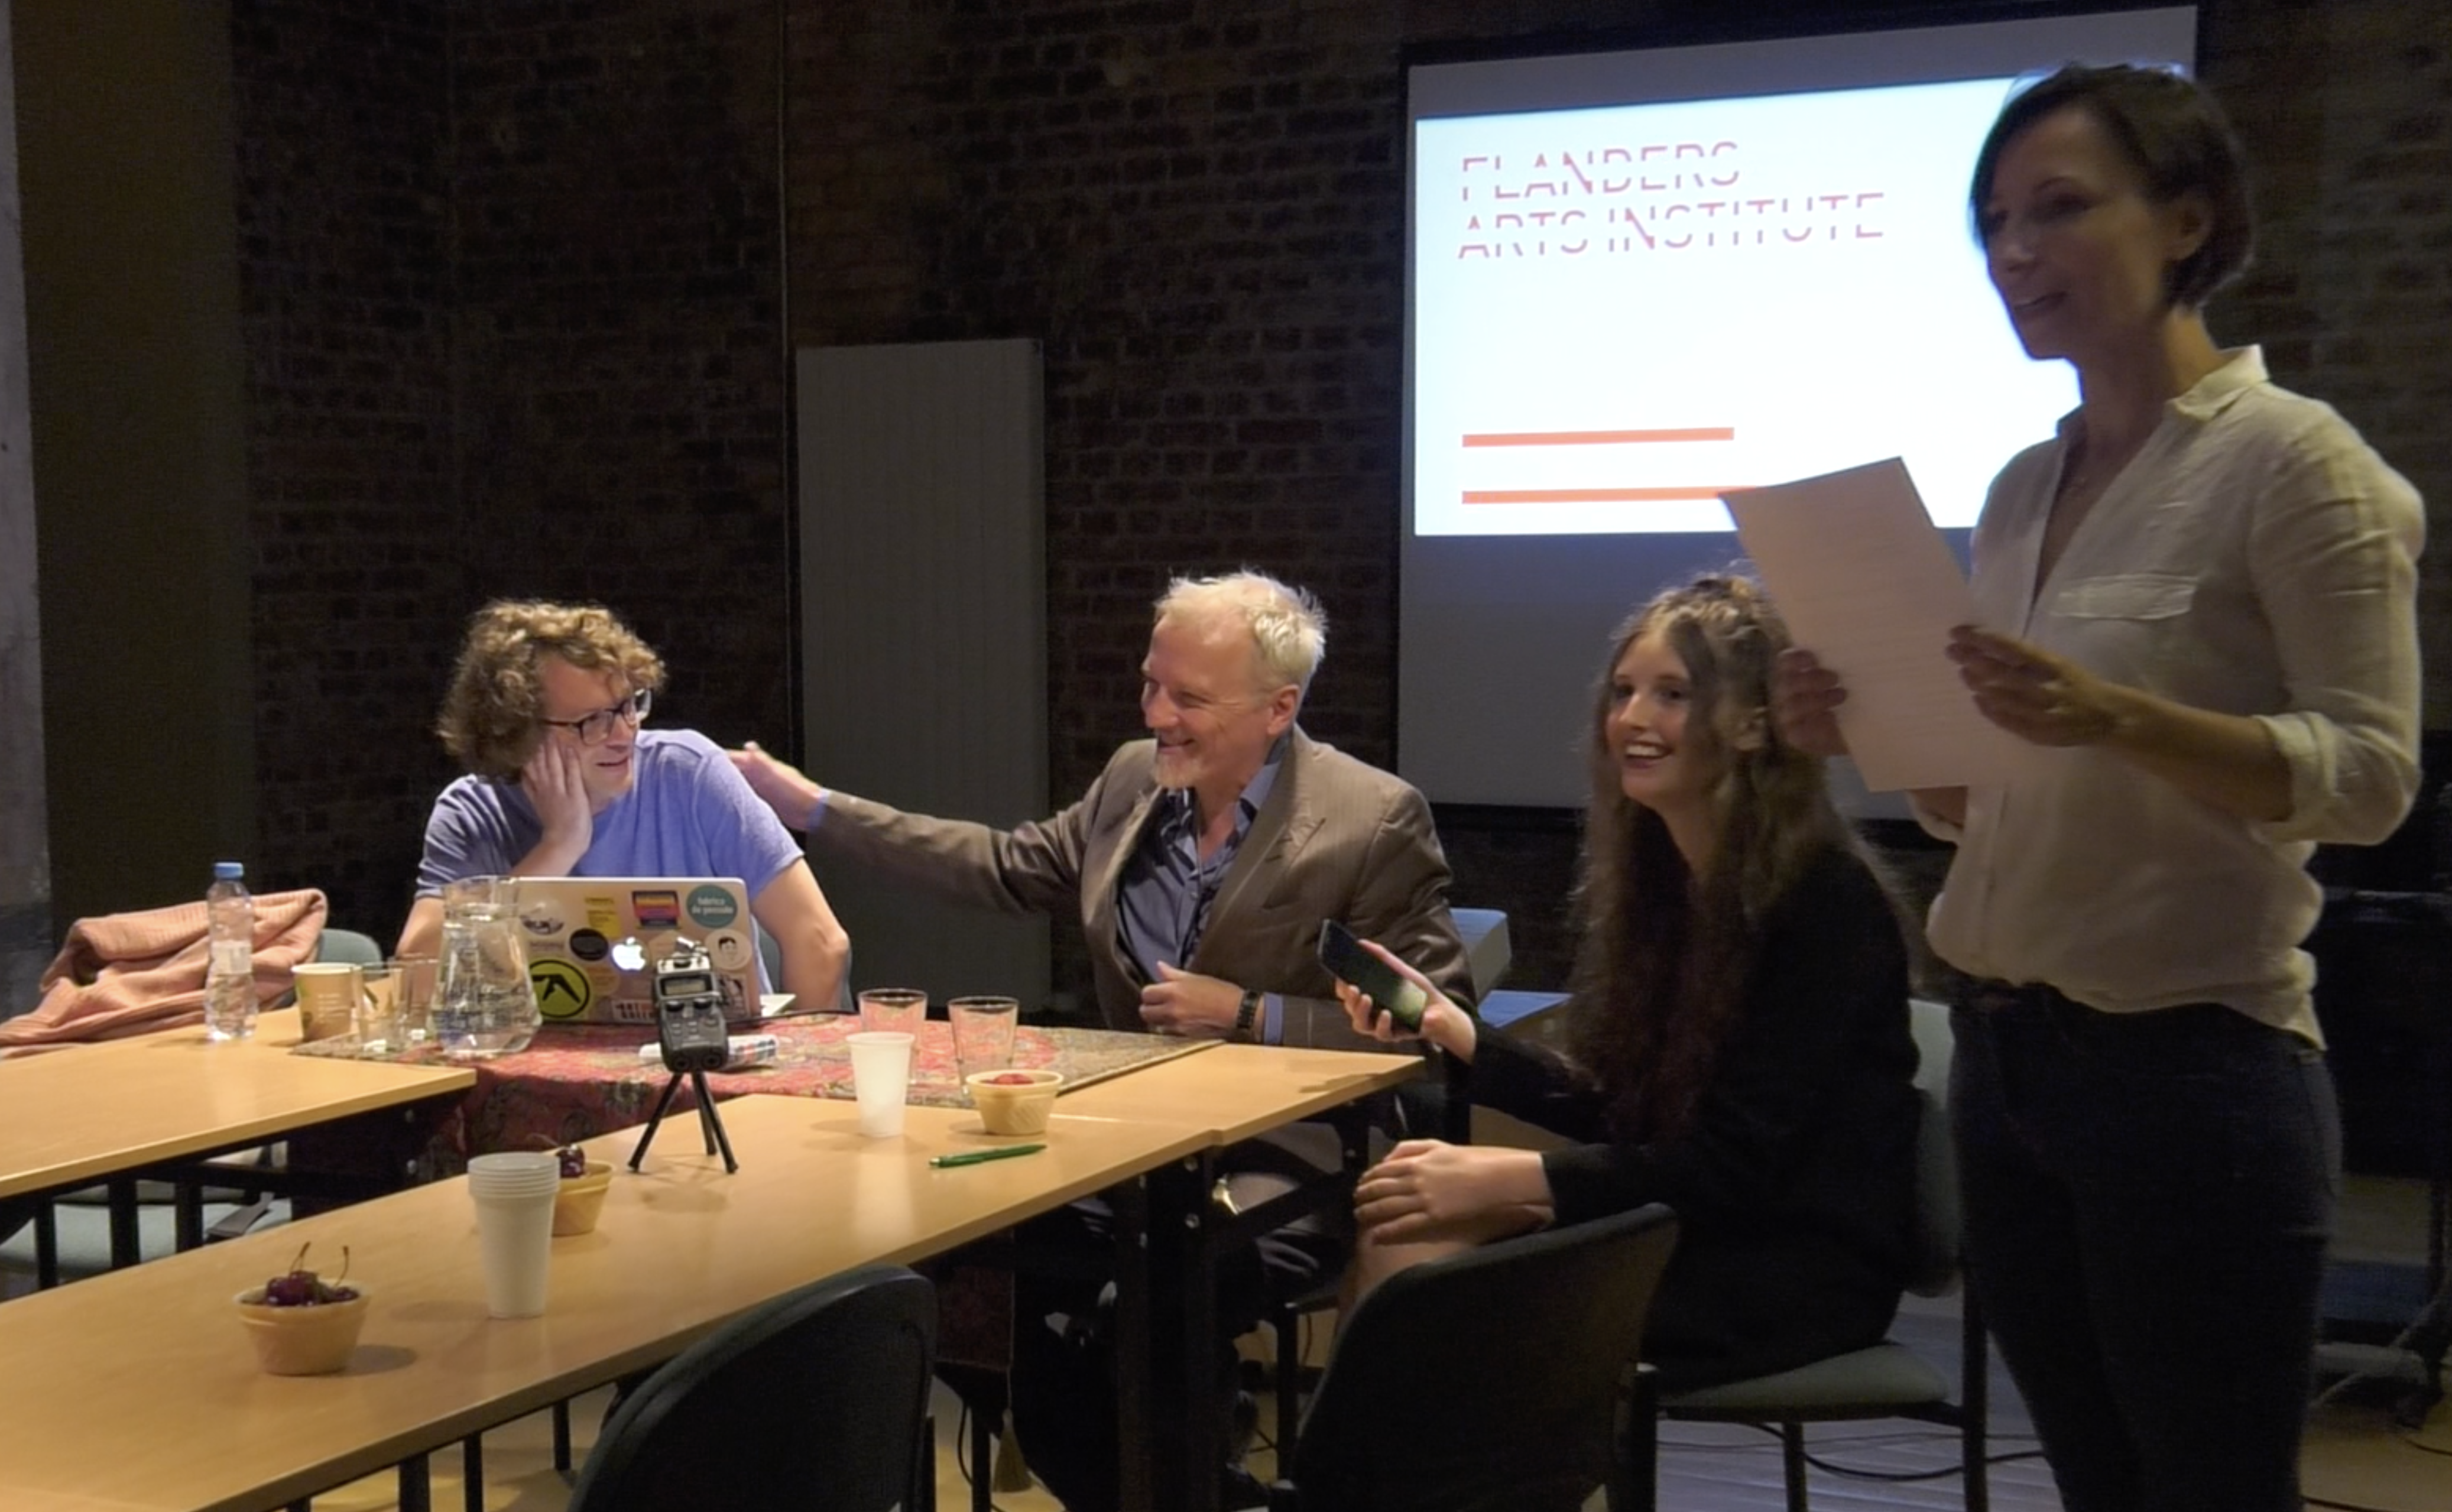 From left: Joris Janssens, Jan Lauwers, Lisaboa Houbrechts, Agata Siwiak, 'Theatre, Artistic and Research Collectives' conference, Adam Mickiewicz University in Poznań, 19 June 2018. Photo from the recording by Anna Paprzycka.